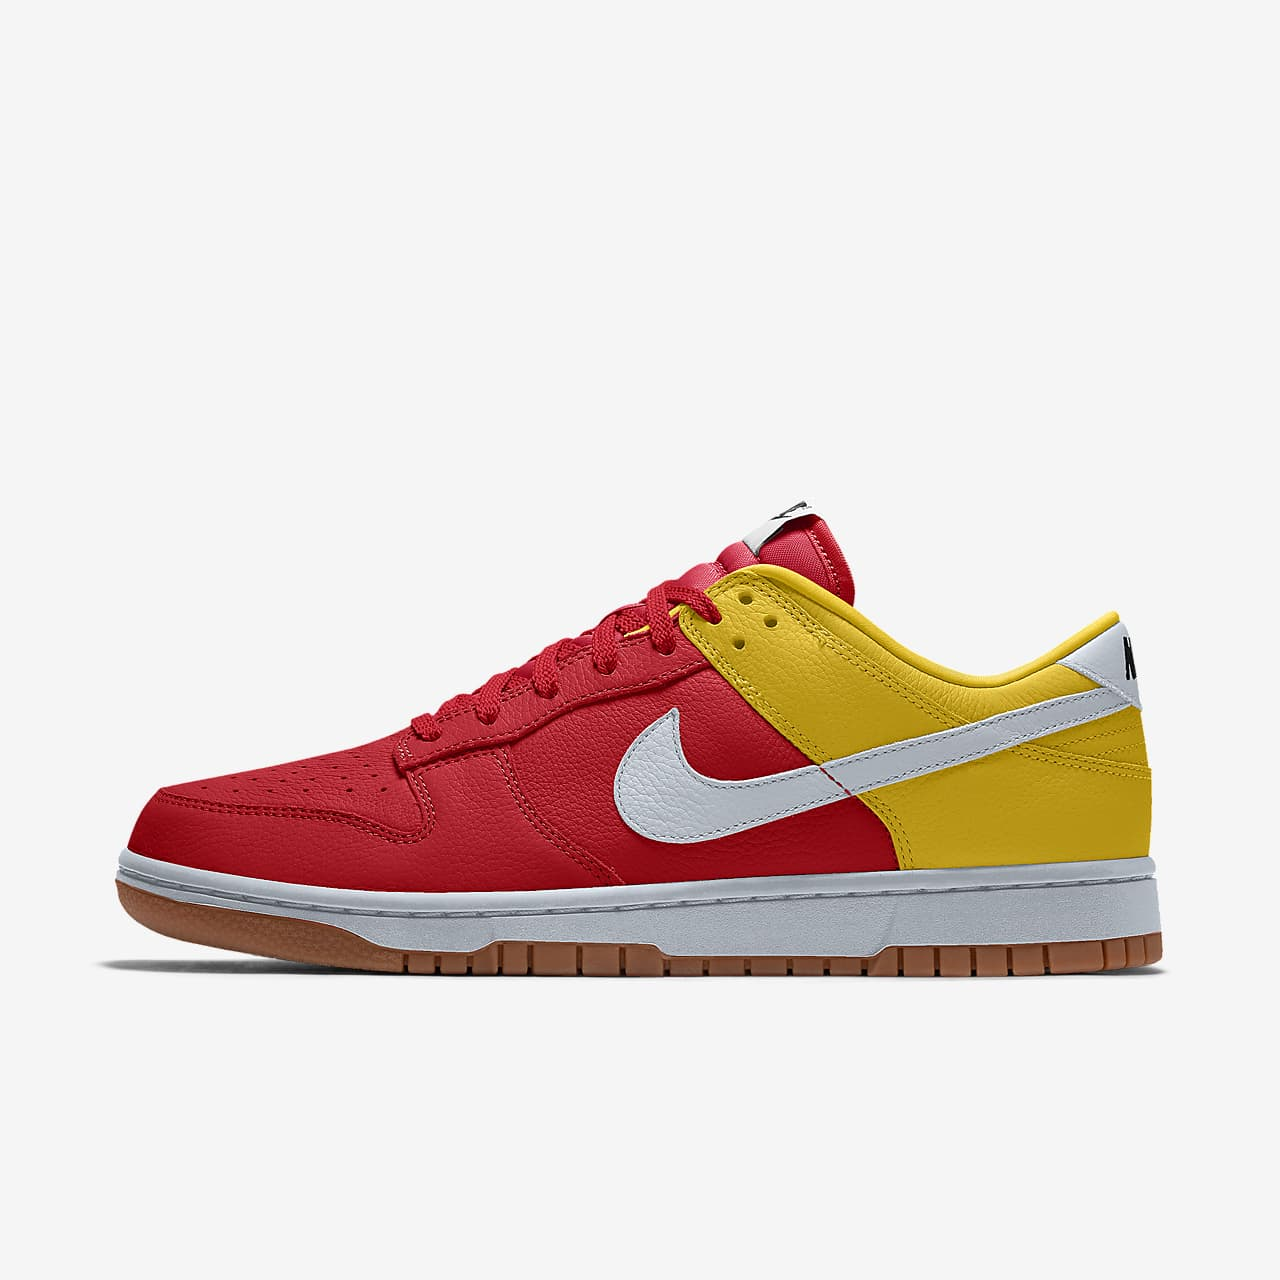 Scarpa personalizzabile Nike Dunk Low By You - Uomo